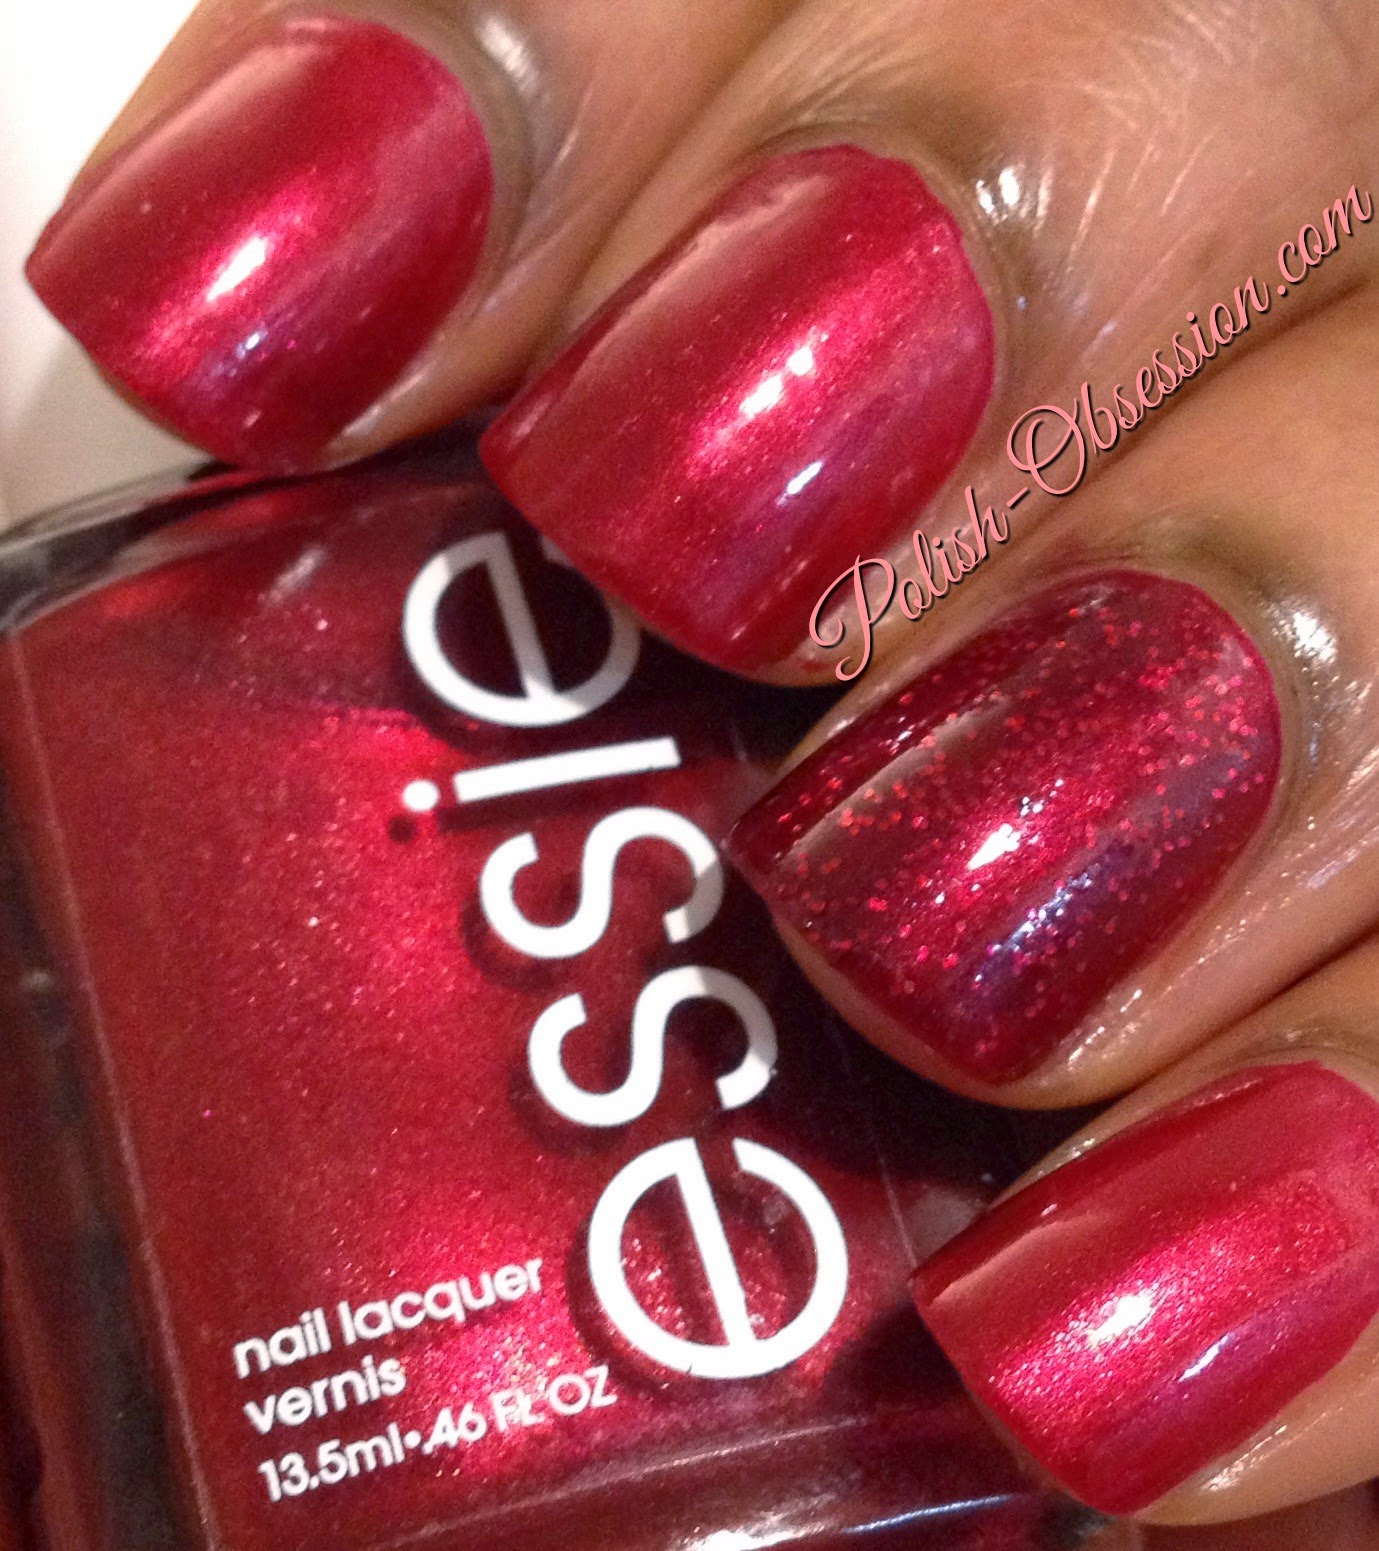 ea3ed97a2b6 I received Essie s Scarlett O Hara and Leading Lady as a gift for Christmas  and I decided to wear them together. Scarlett O Hara is a red metallic  shimmer .